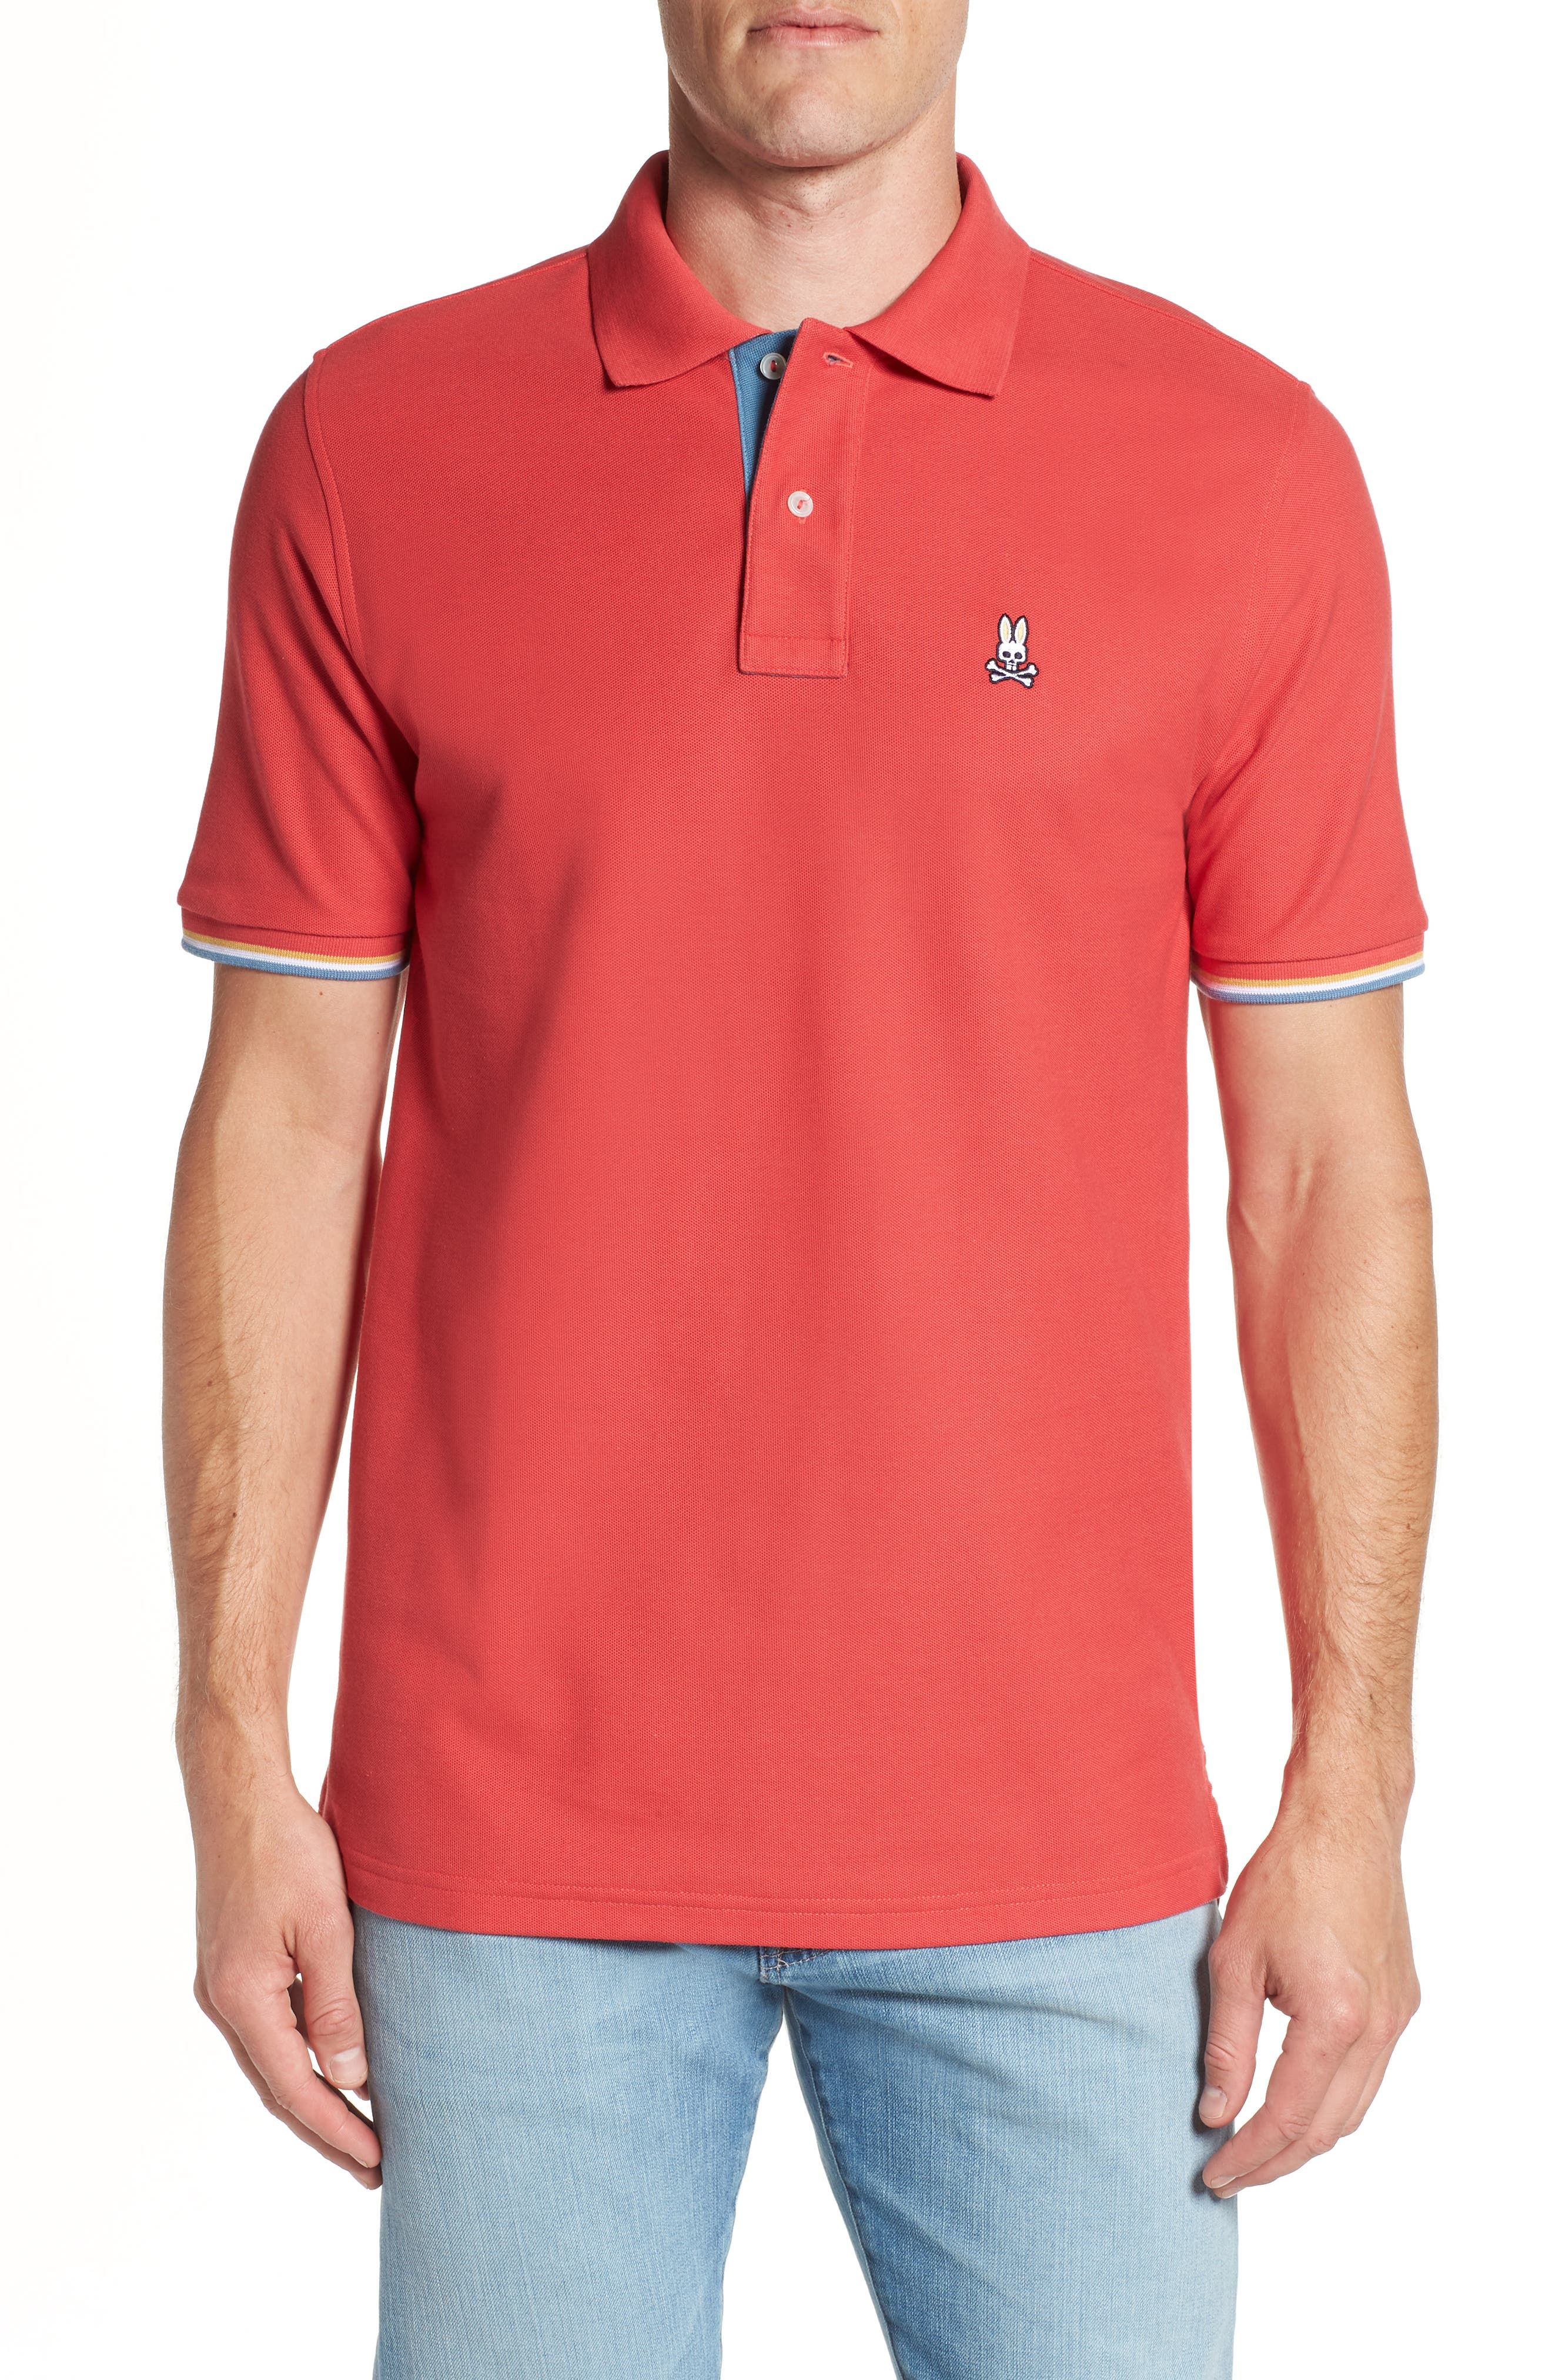 PSYCHO BUNNY St. Croix Regular Fit Polo Shirt in Cassis